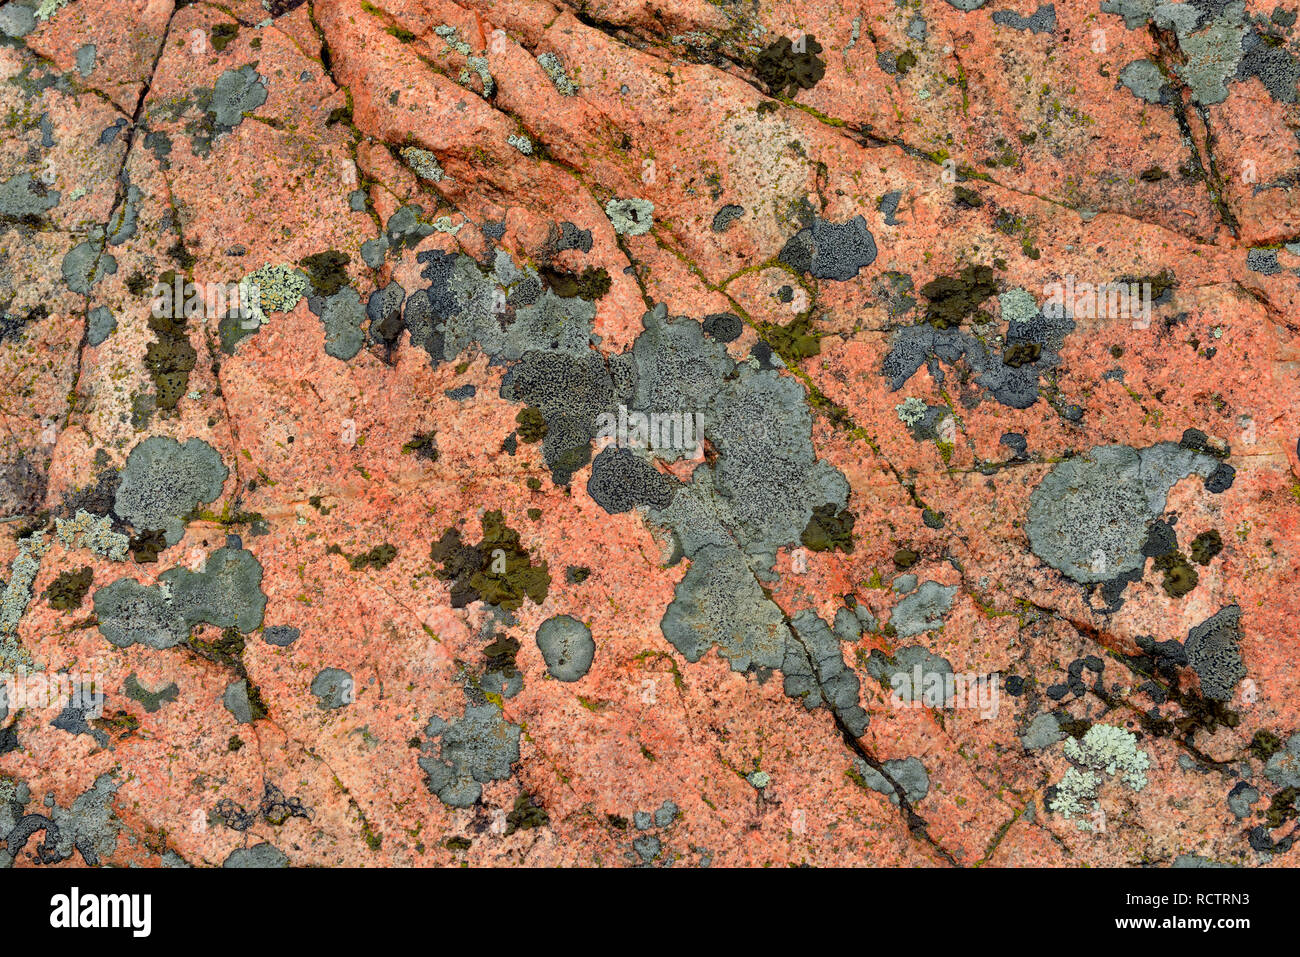 Precambrian shield granite with an orange igneous dyke and lichens, Yellowknife, Northwest Territories, Canada - Stock Image